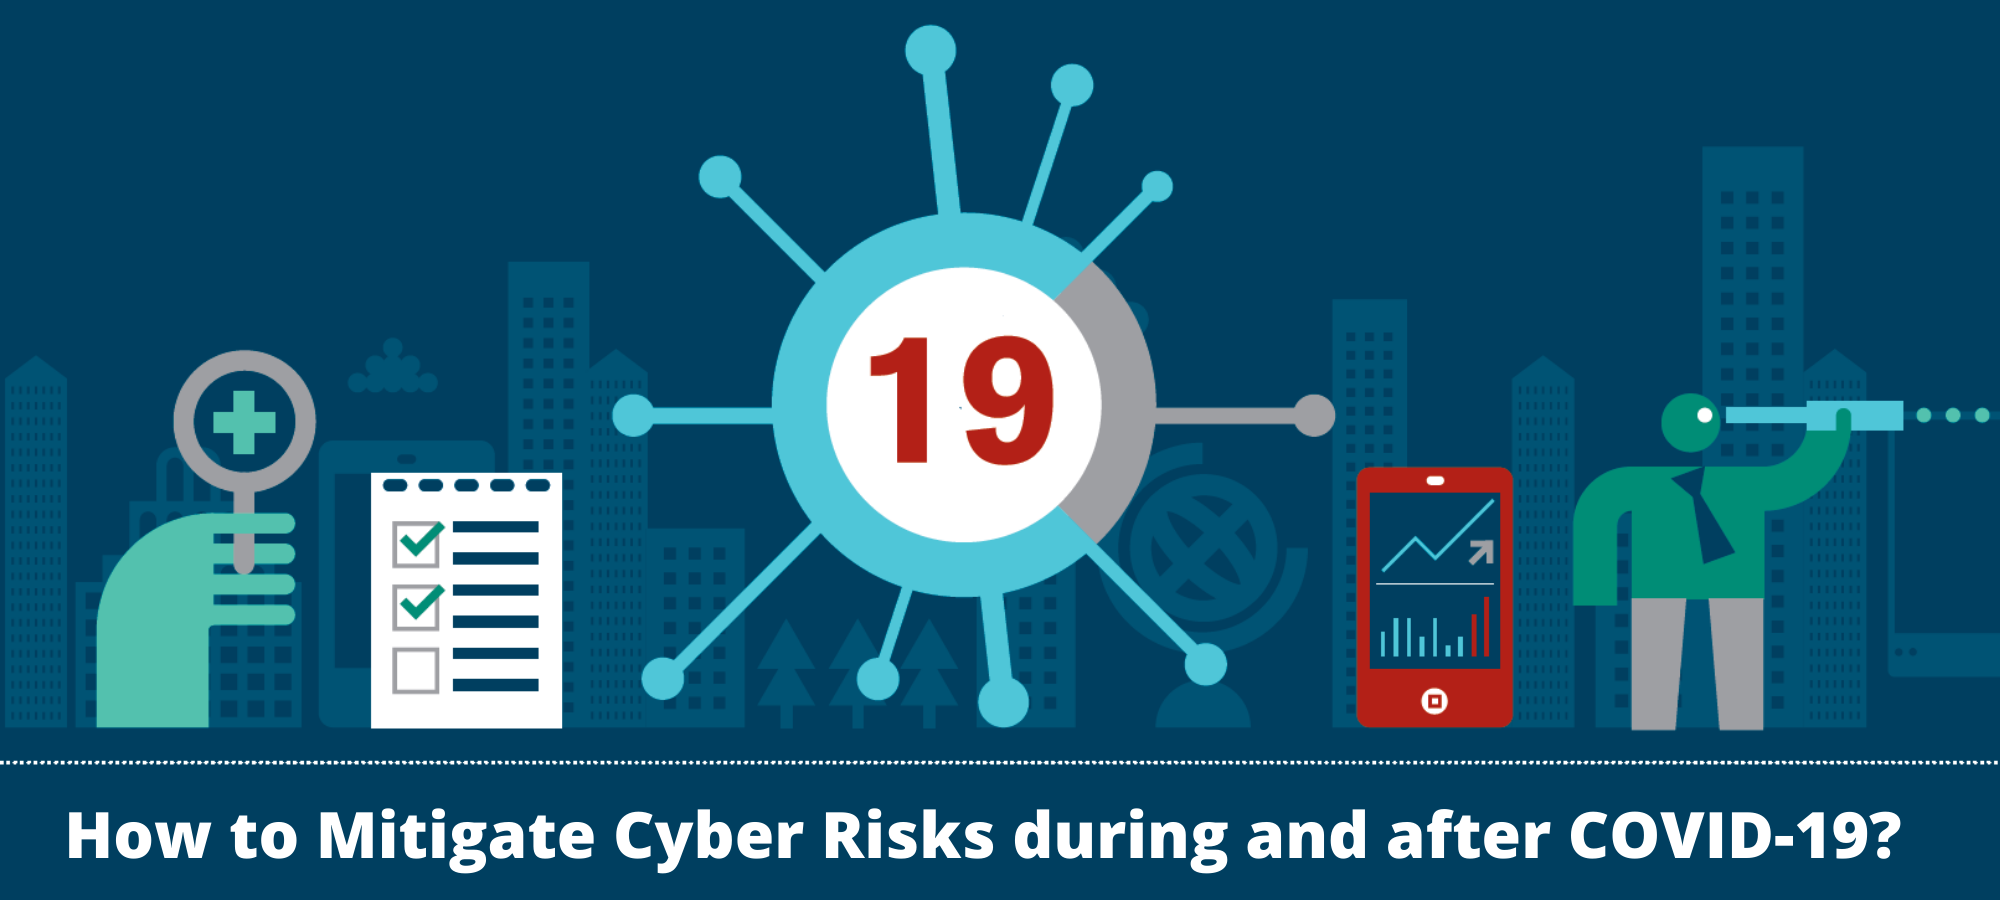 How to Mitigate Cyber Risks during and after COVID-19